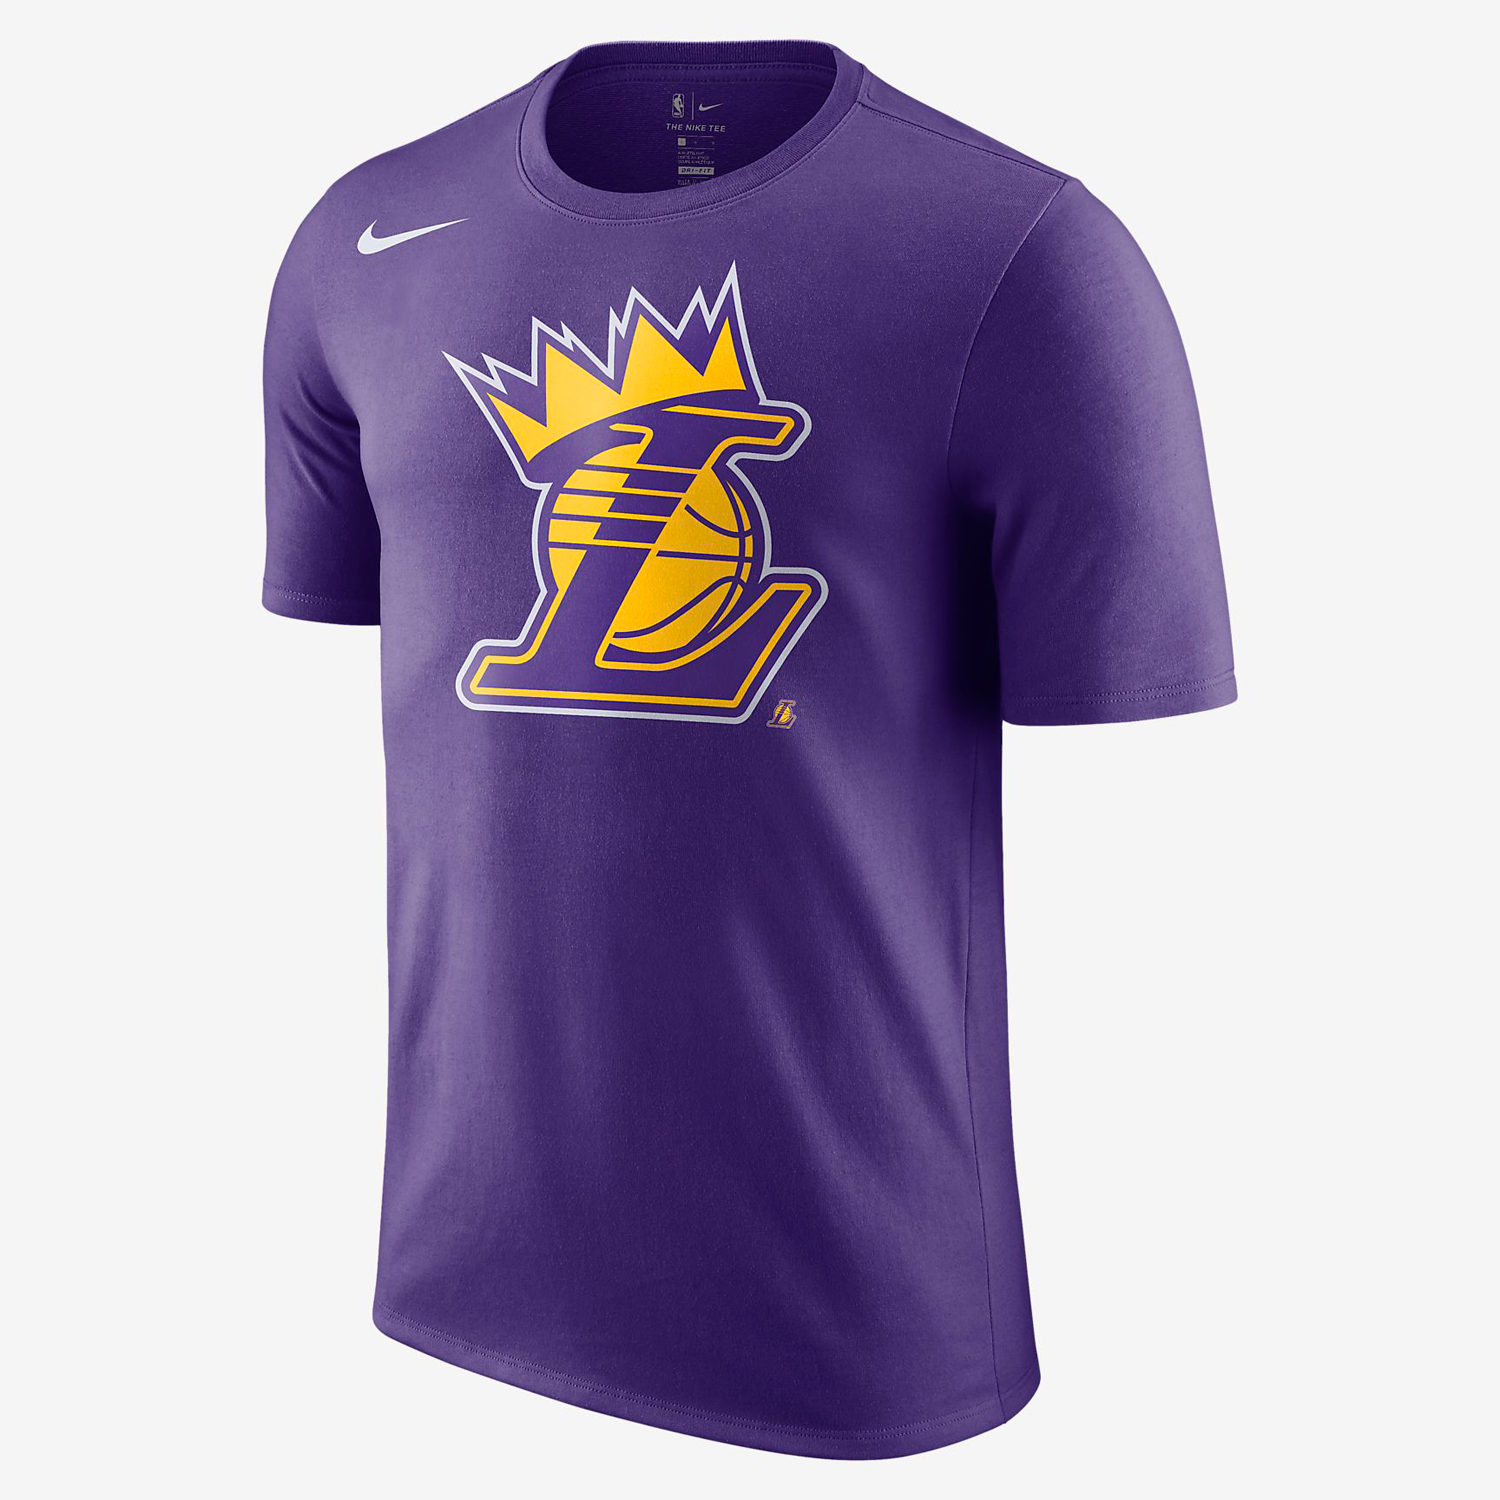 Nike Shirt LeBron LA Lakers | Crown T SneakerFits.com